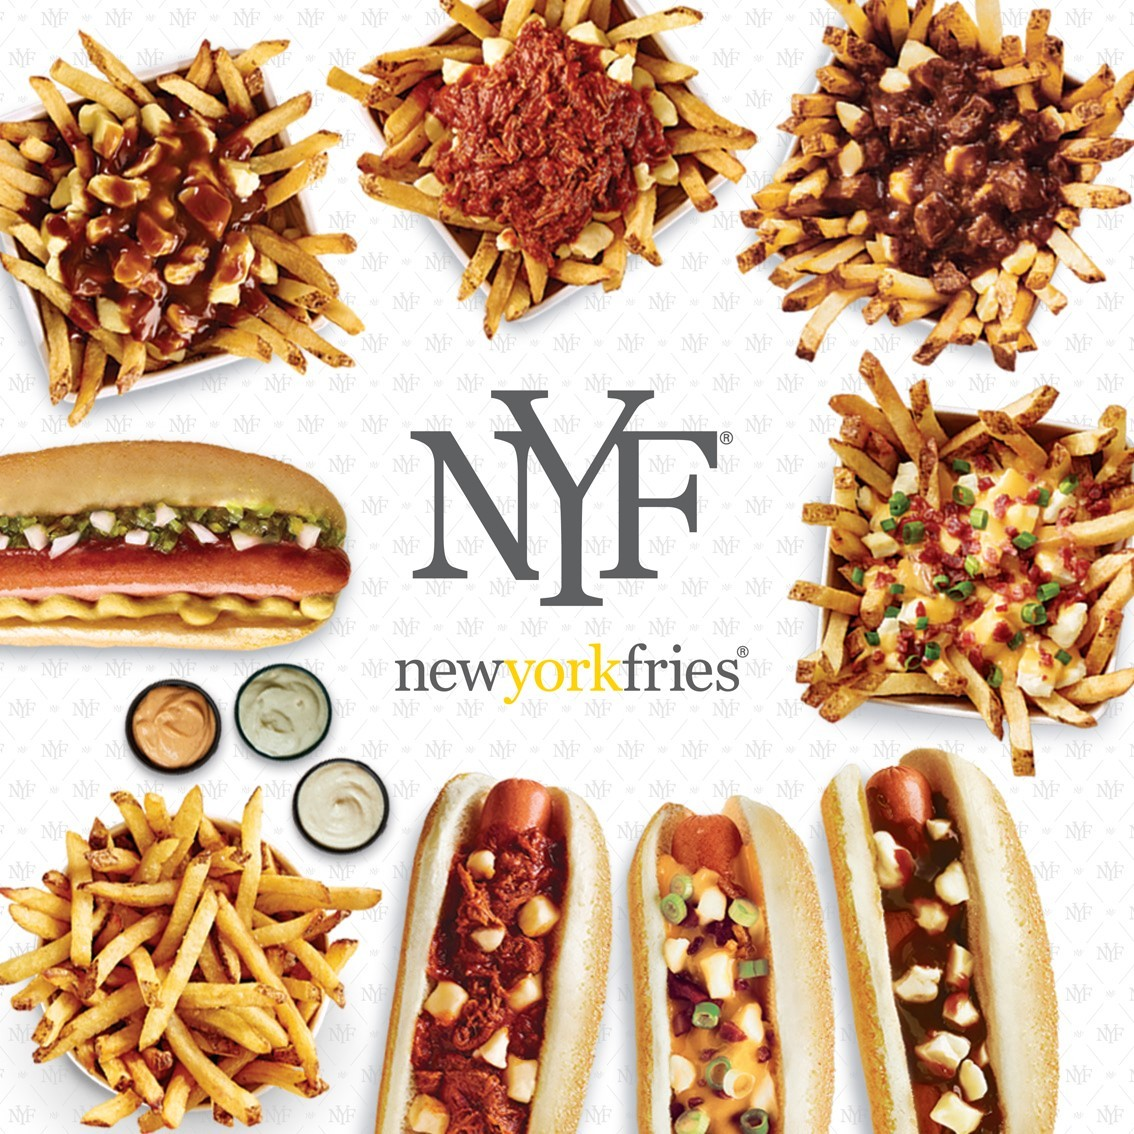 Limited time coupon for you to save 15% at New York Fries!